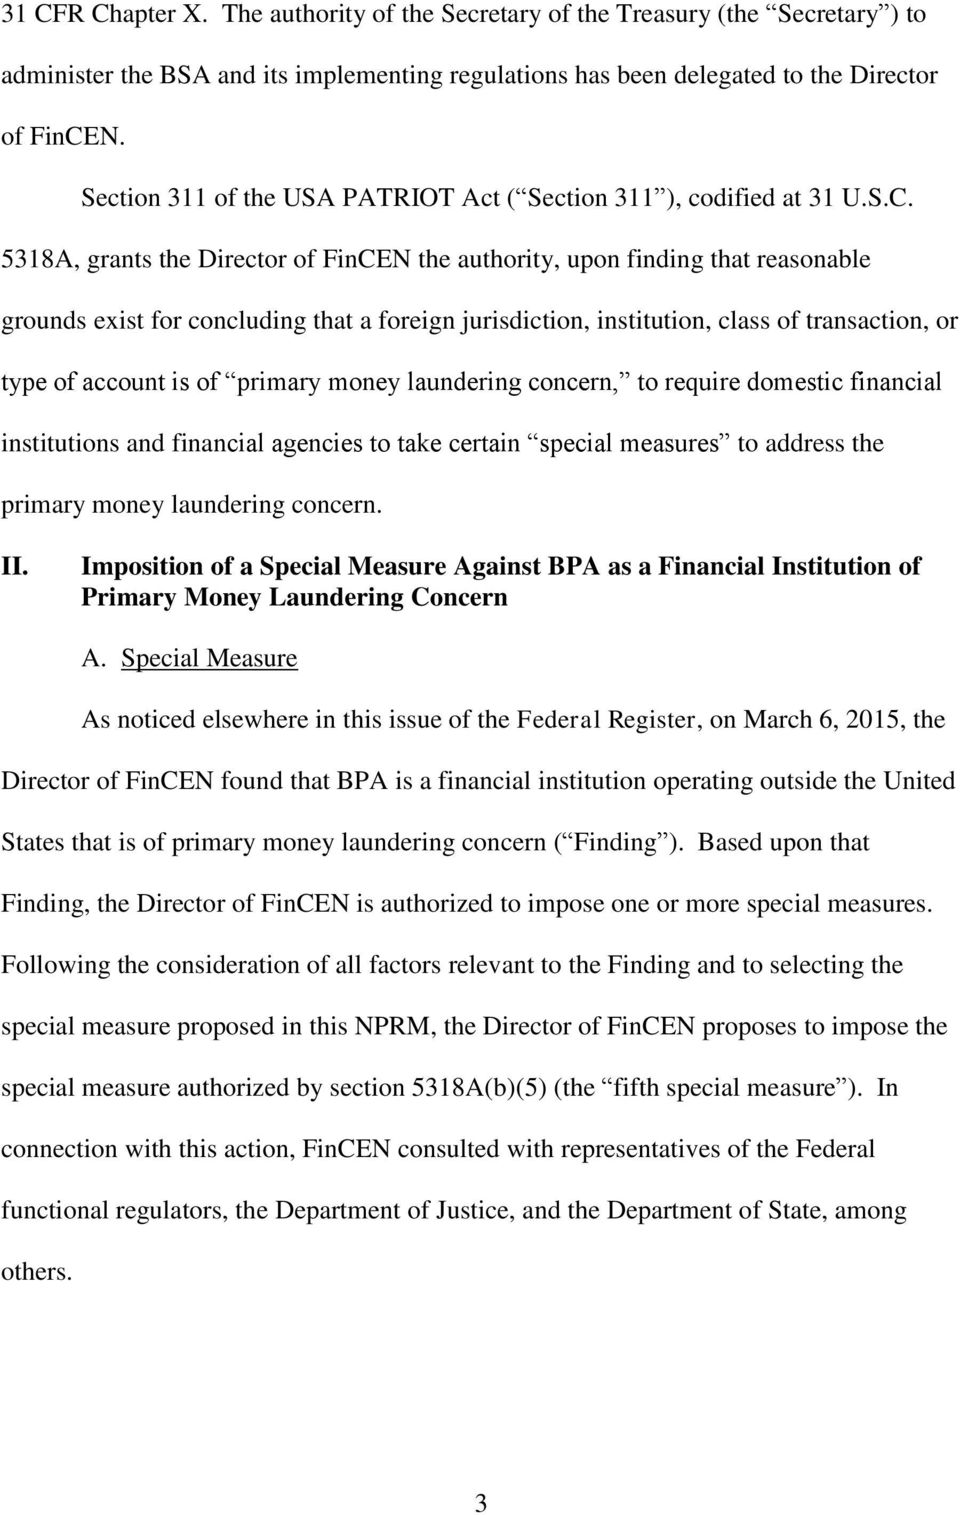 5318A, grants the Director of FinCEN the authority, upon finding that reasonable grounds exist for concluding that a foreign jurisdiction, institution, class of transaction, or type of account is of